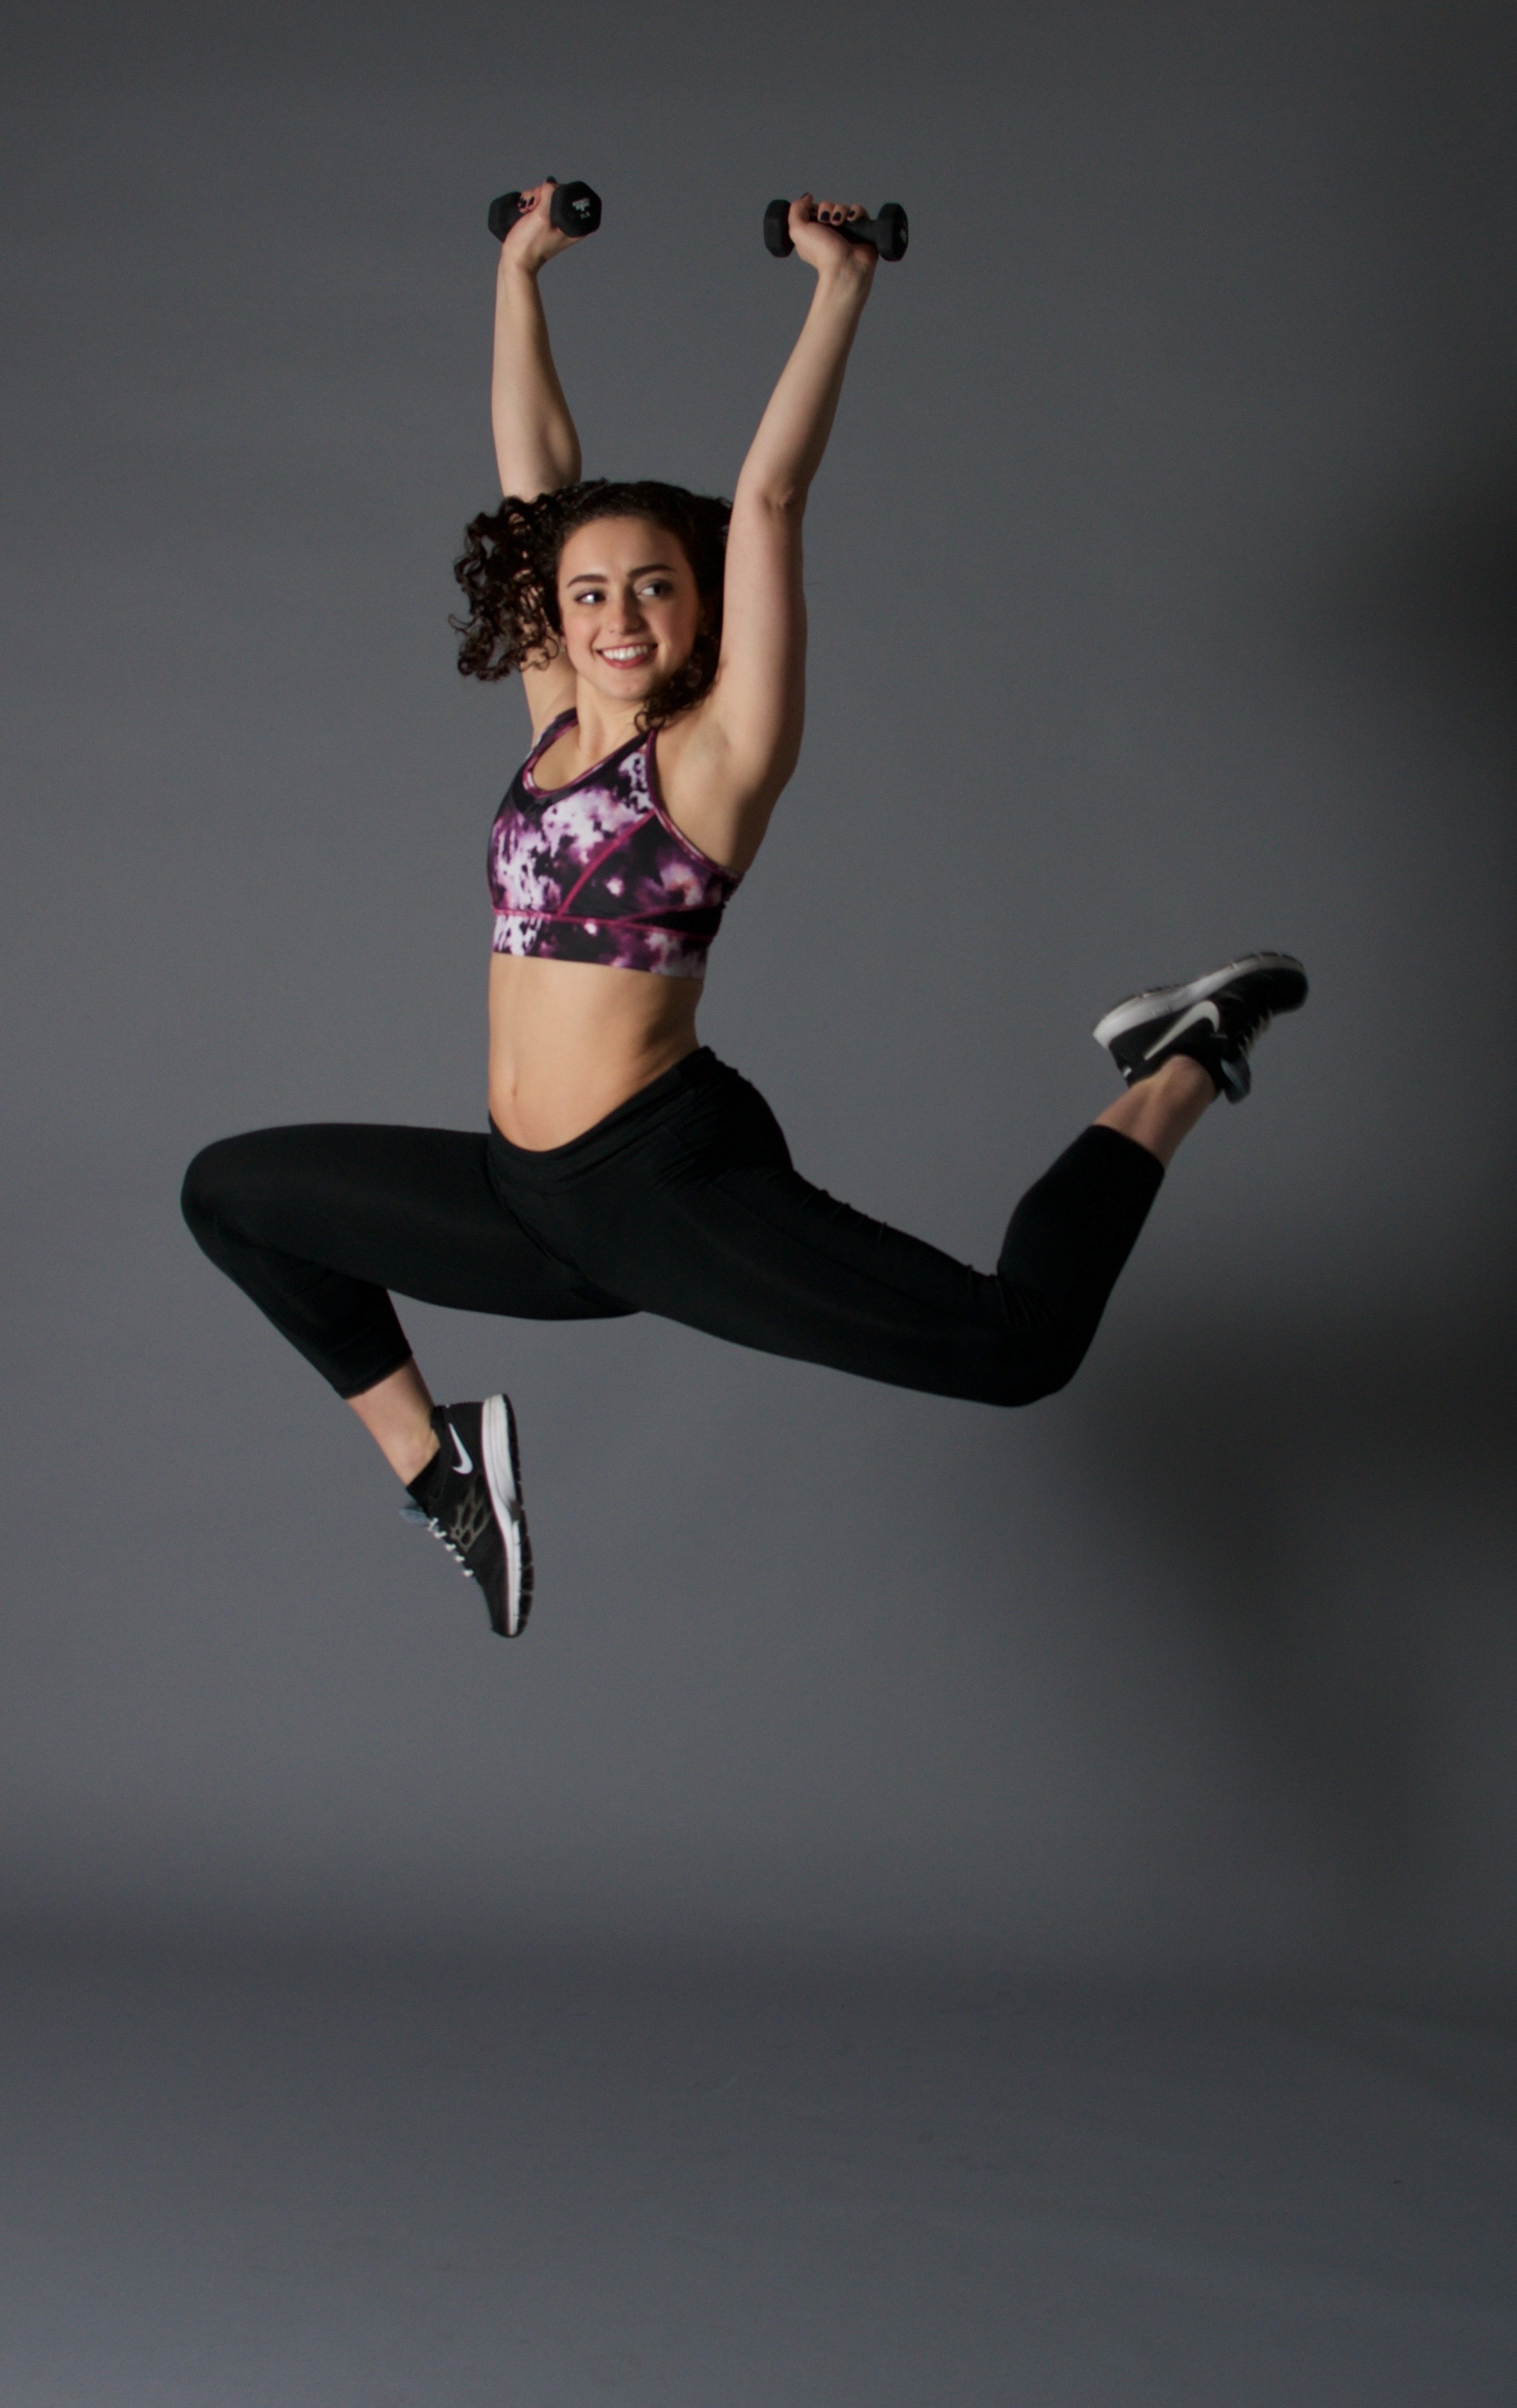 Julia stag leap with weights